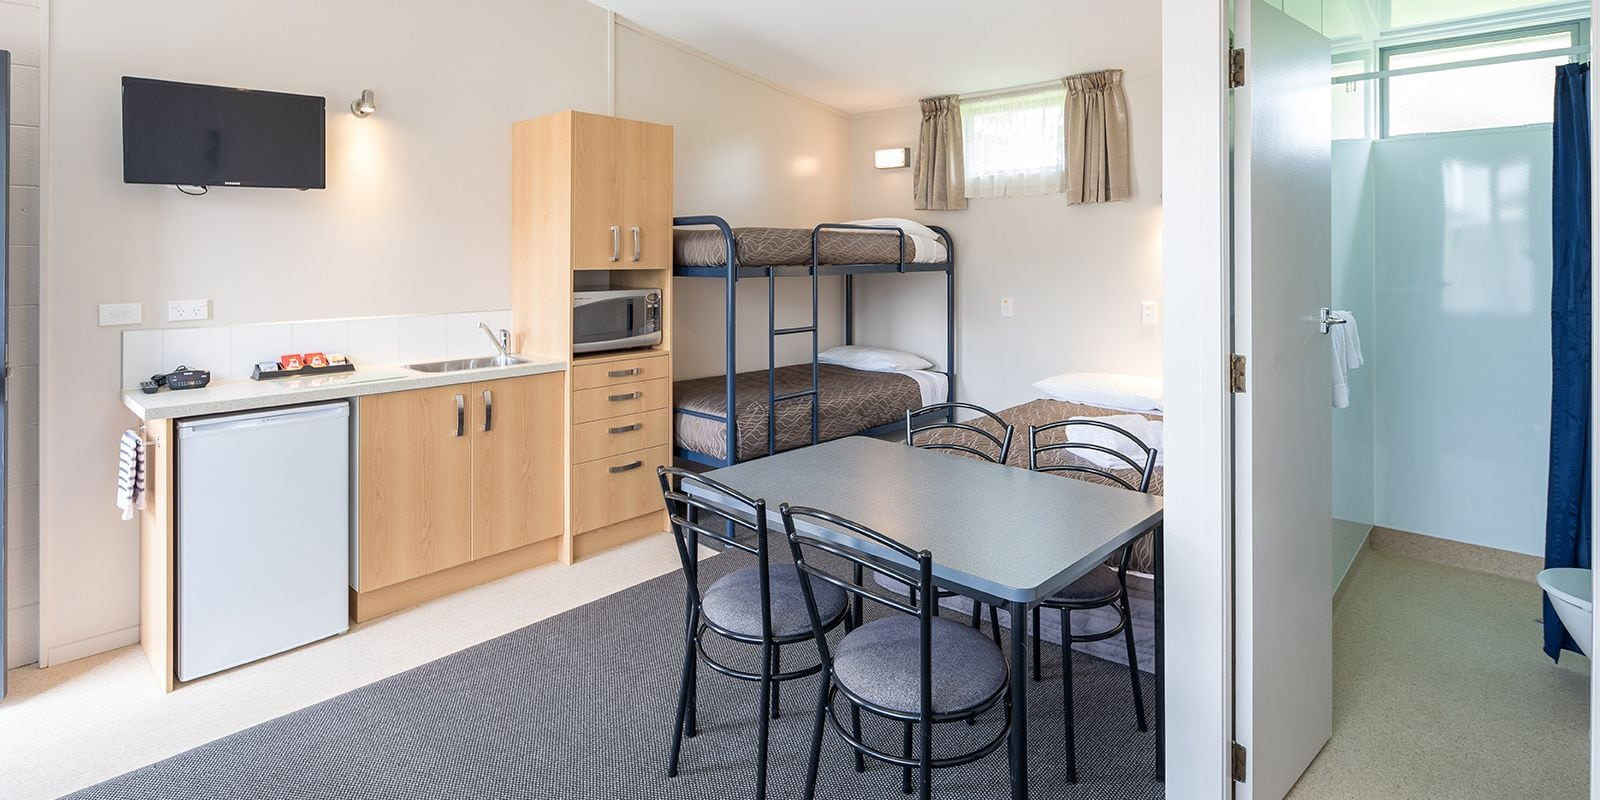 Studio Accommodation At Amber Kiwi Holiday Park In Christchurch